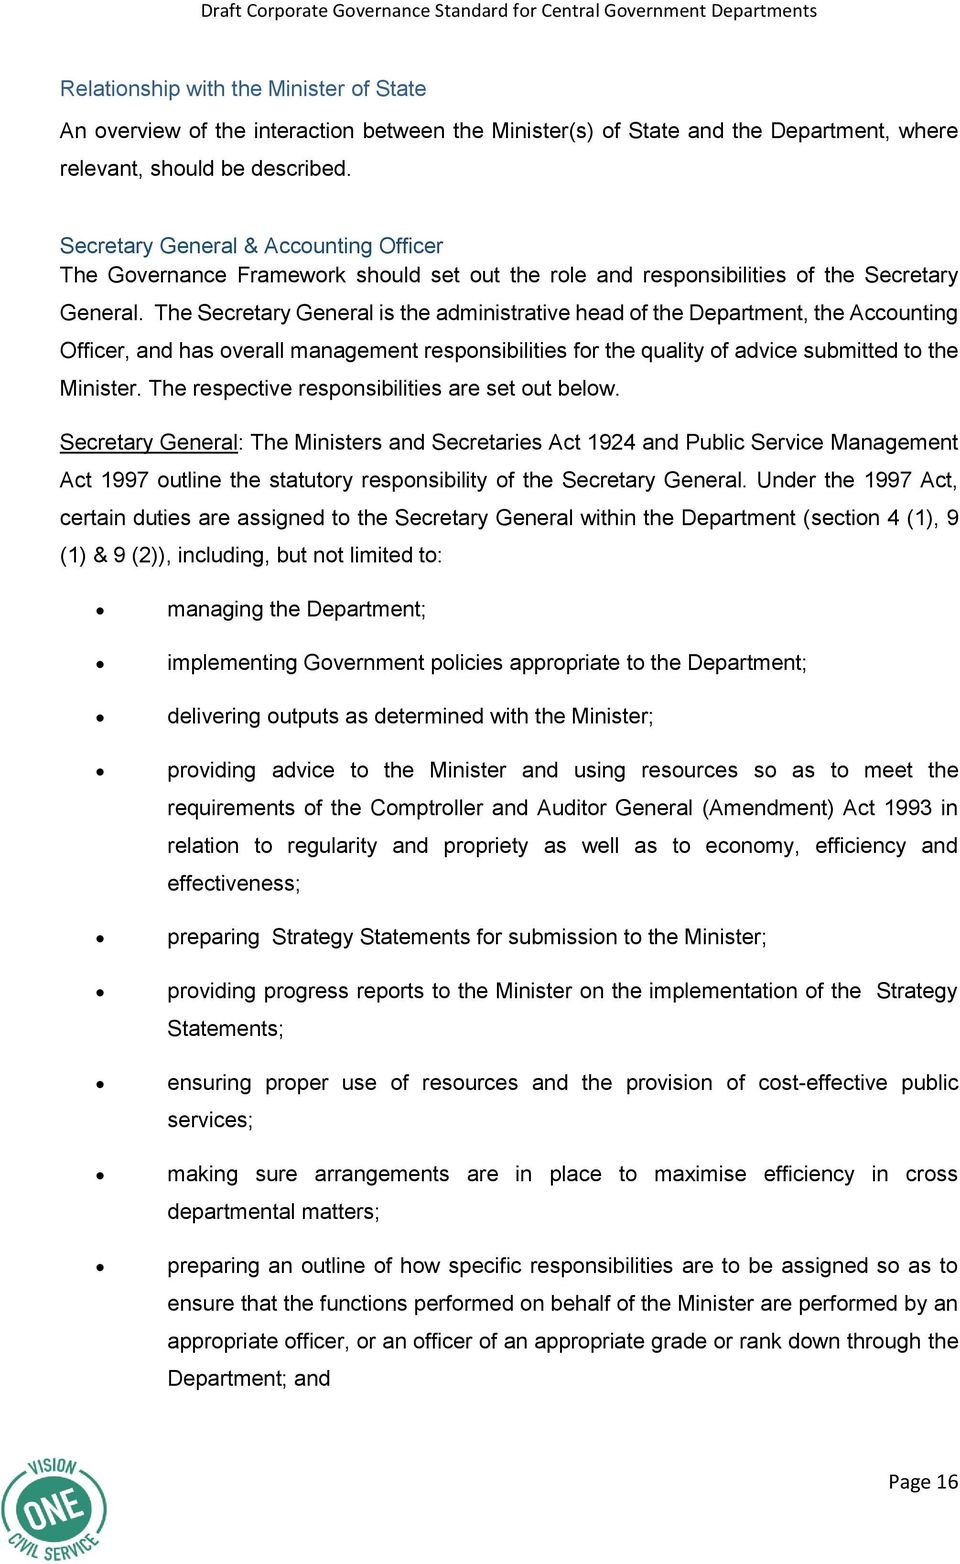 The Secretary General is the administrative head of the Department, the Accounting Officer, and has overall management responsibilities for the quality of advice submitted to the Minister.